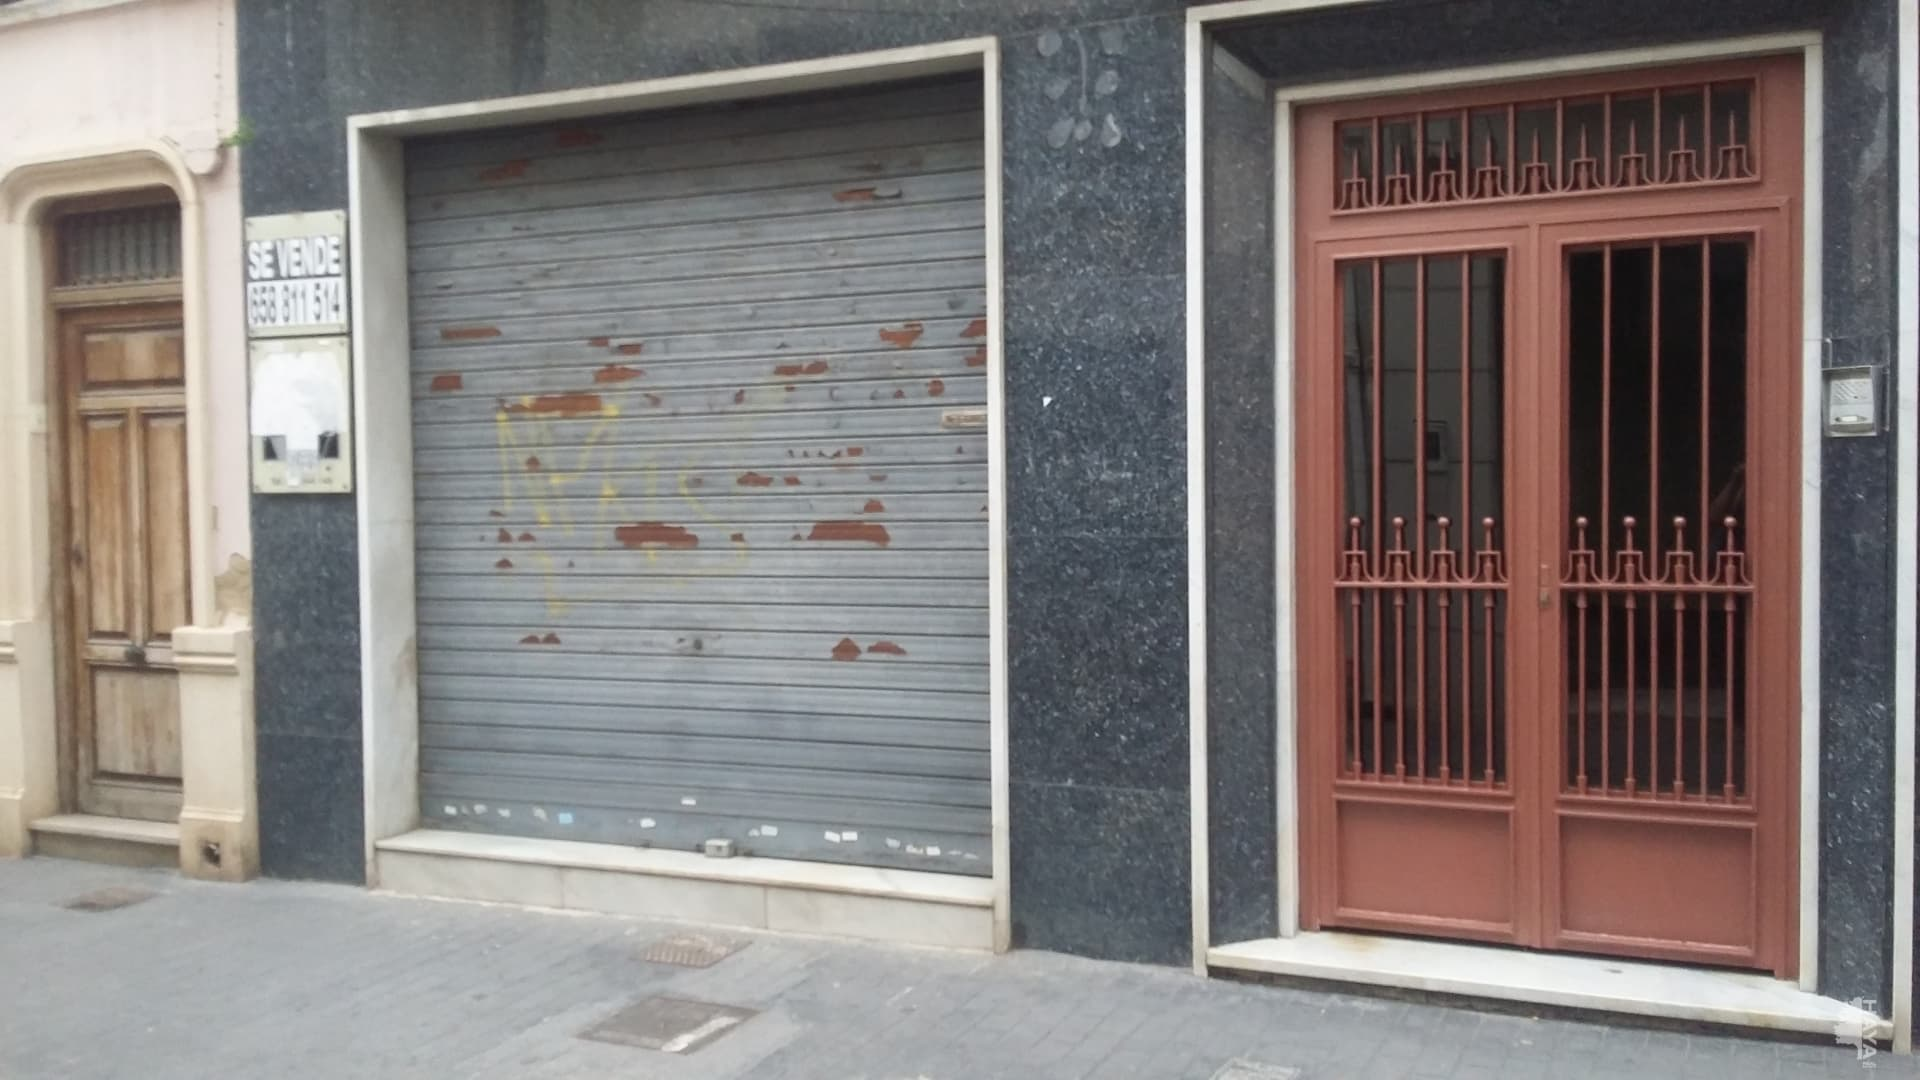 Local en venta en Manises, Valencia, Calle Major, 89.894 €, 109 m2